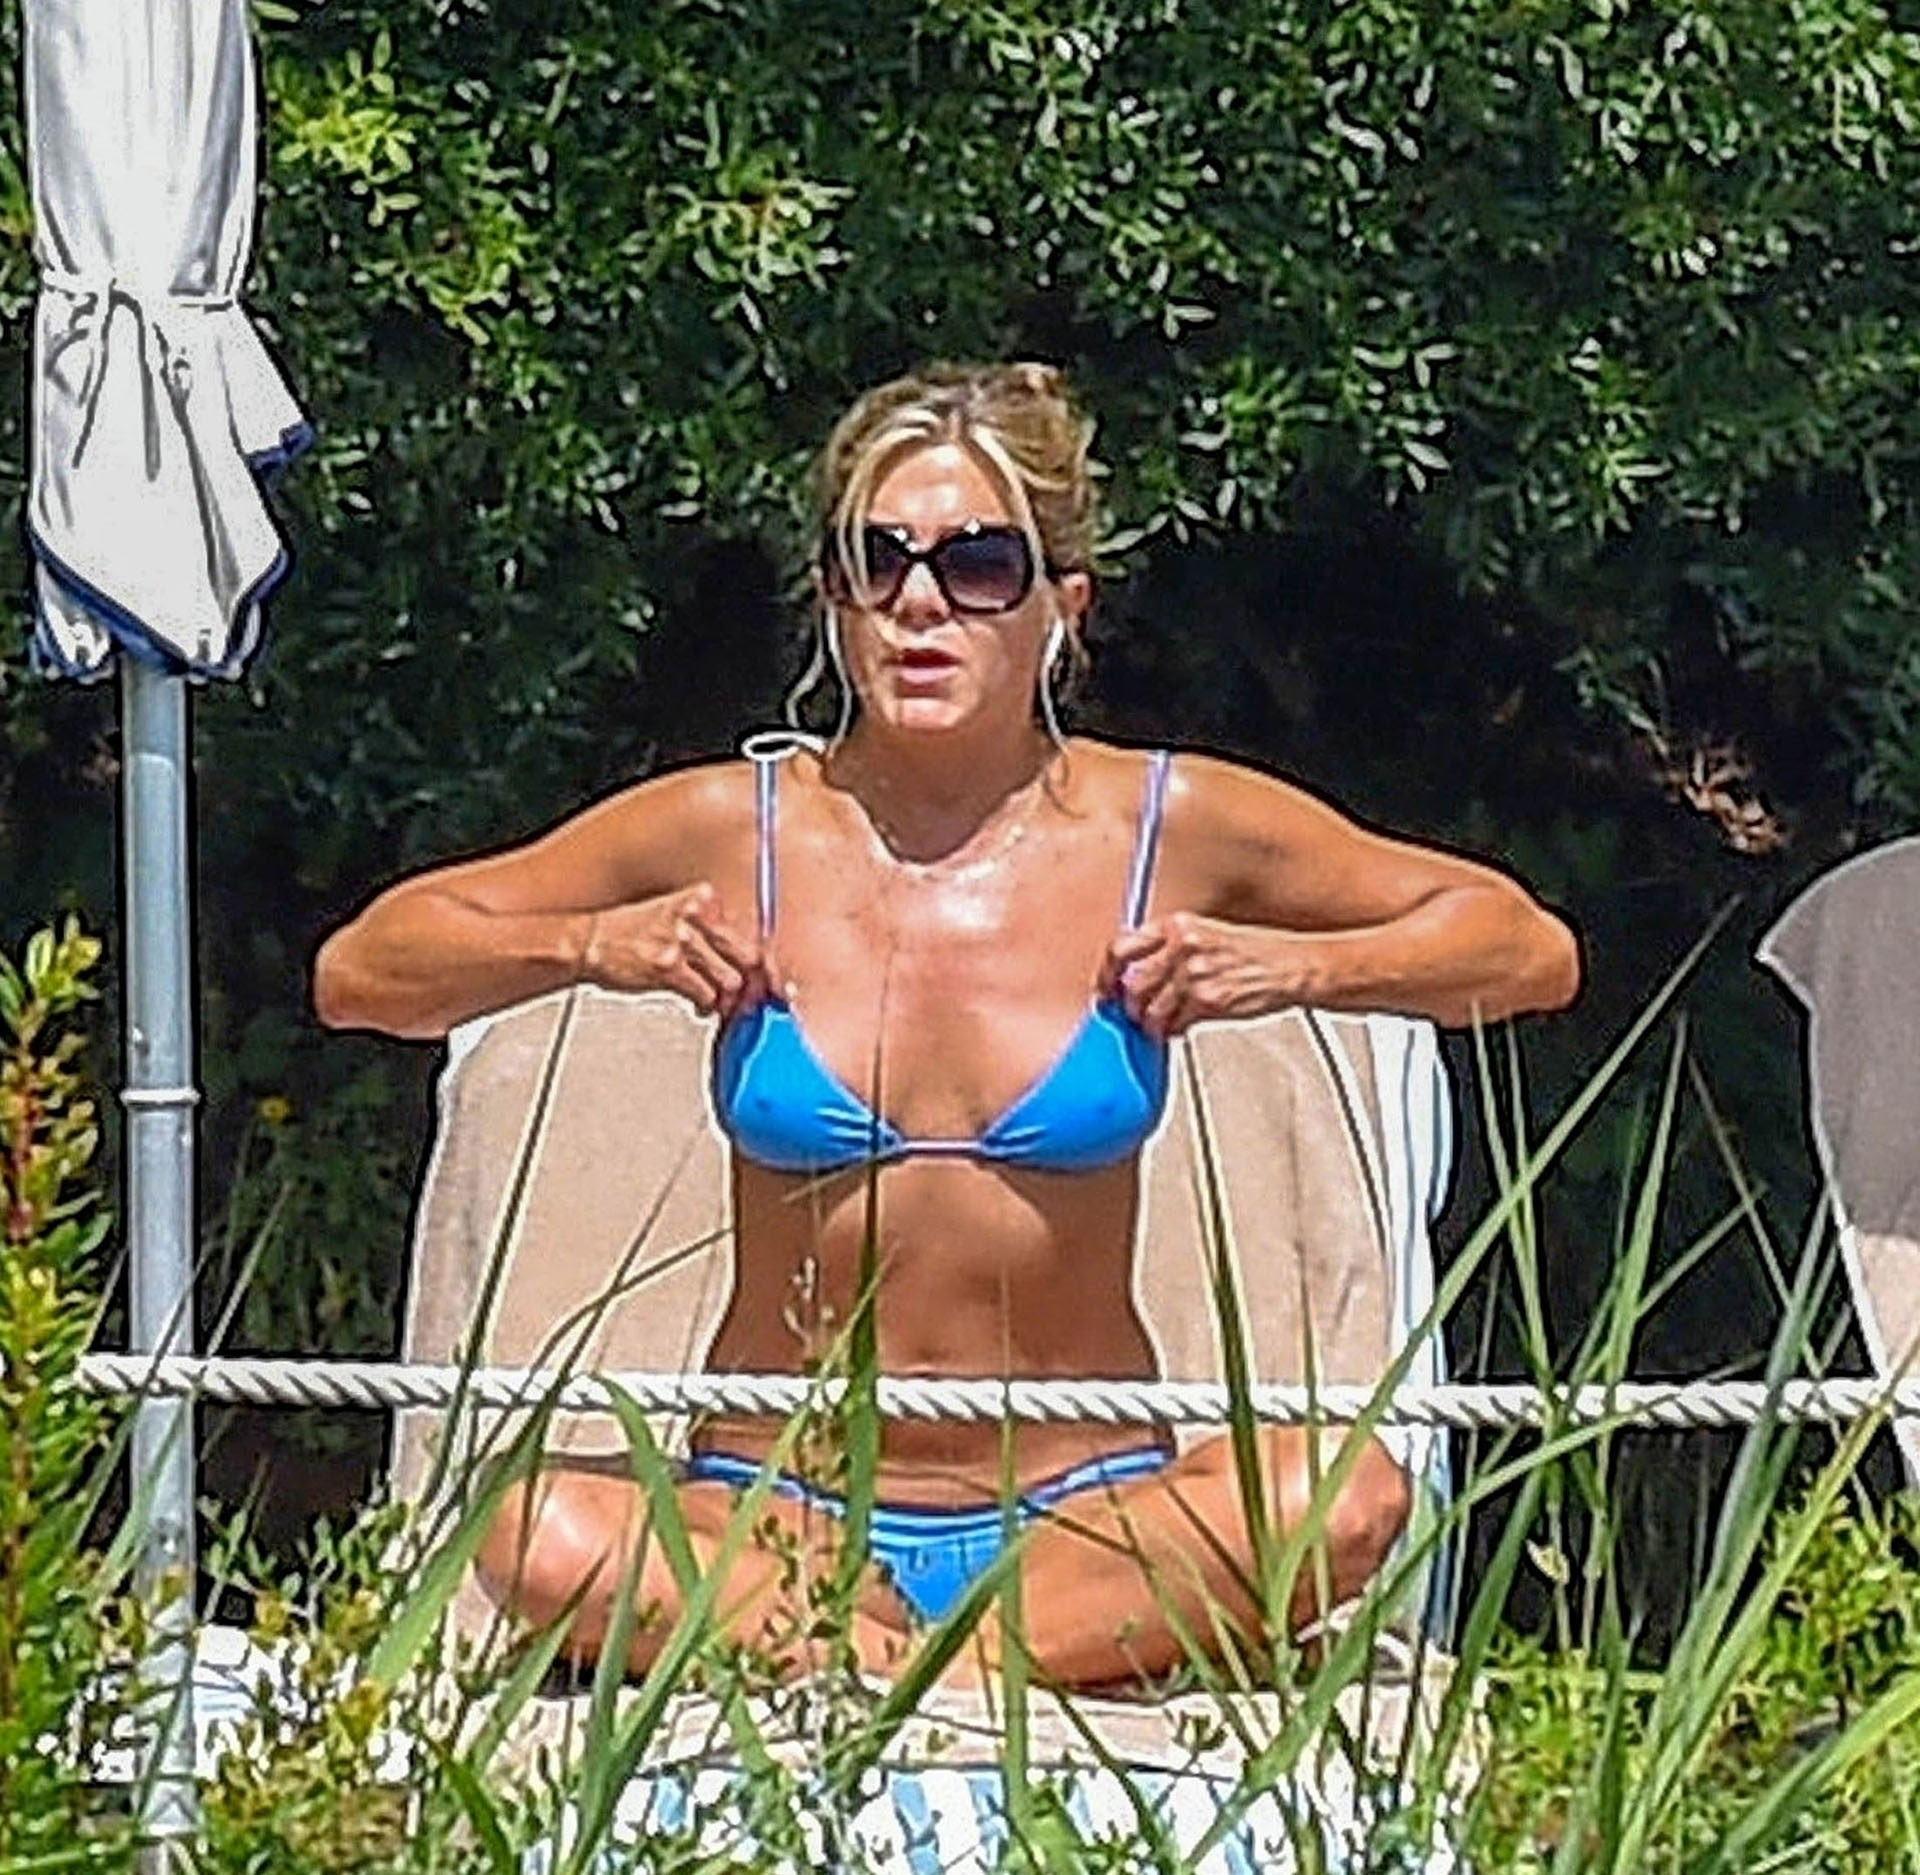 La actriz Jennifer Aniston disfrutó de un día de sol y piscina en Italia ( Backgrid UK/The Grosby Group)